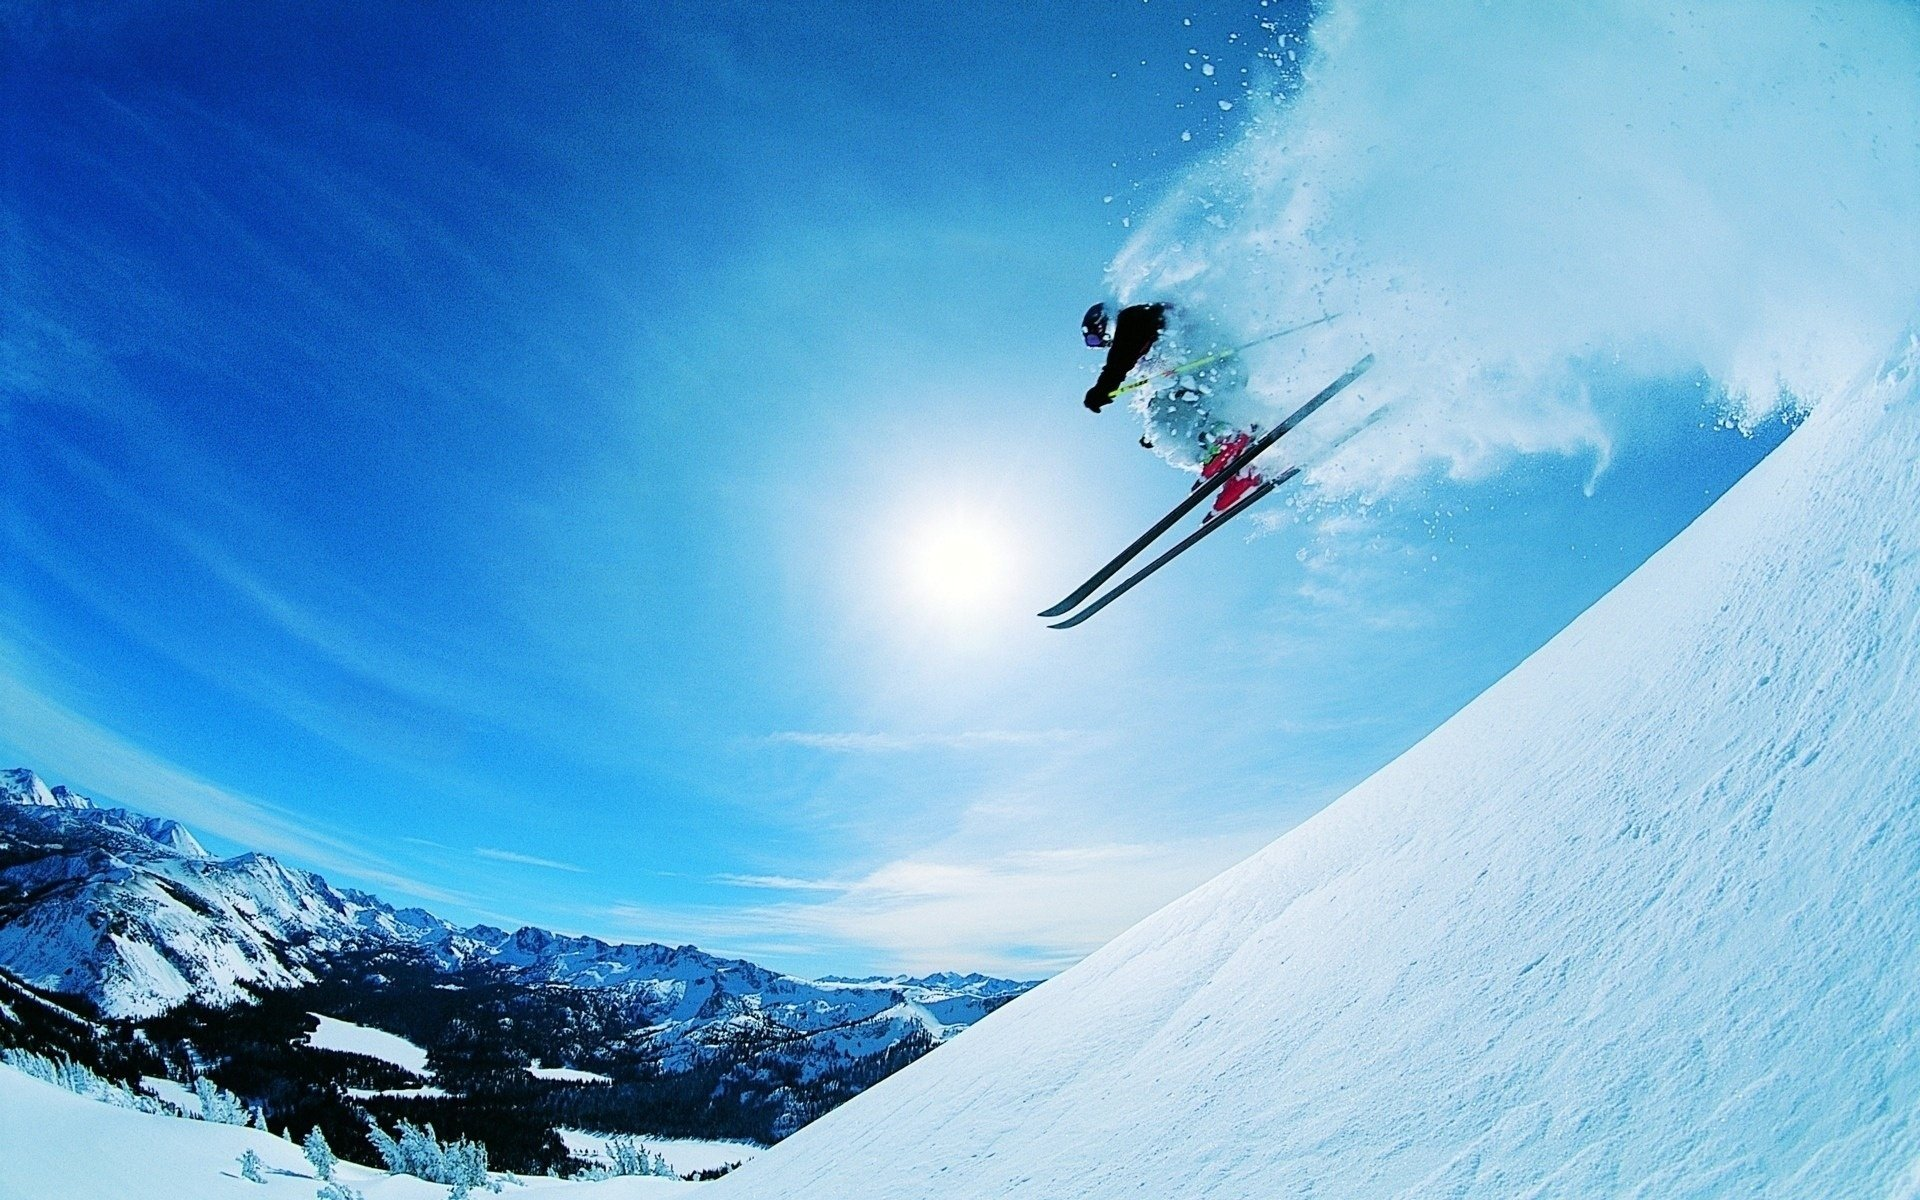 111 Skiing Hd Wallpapers Background Images Wallpaper Abyss